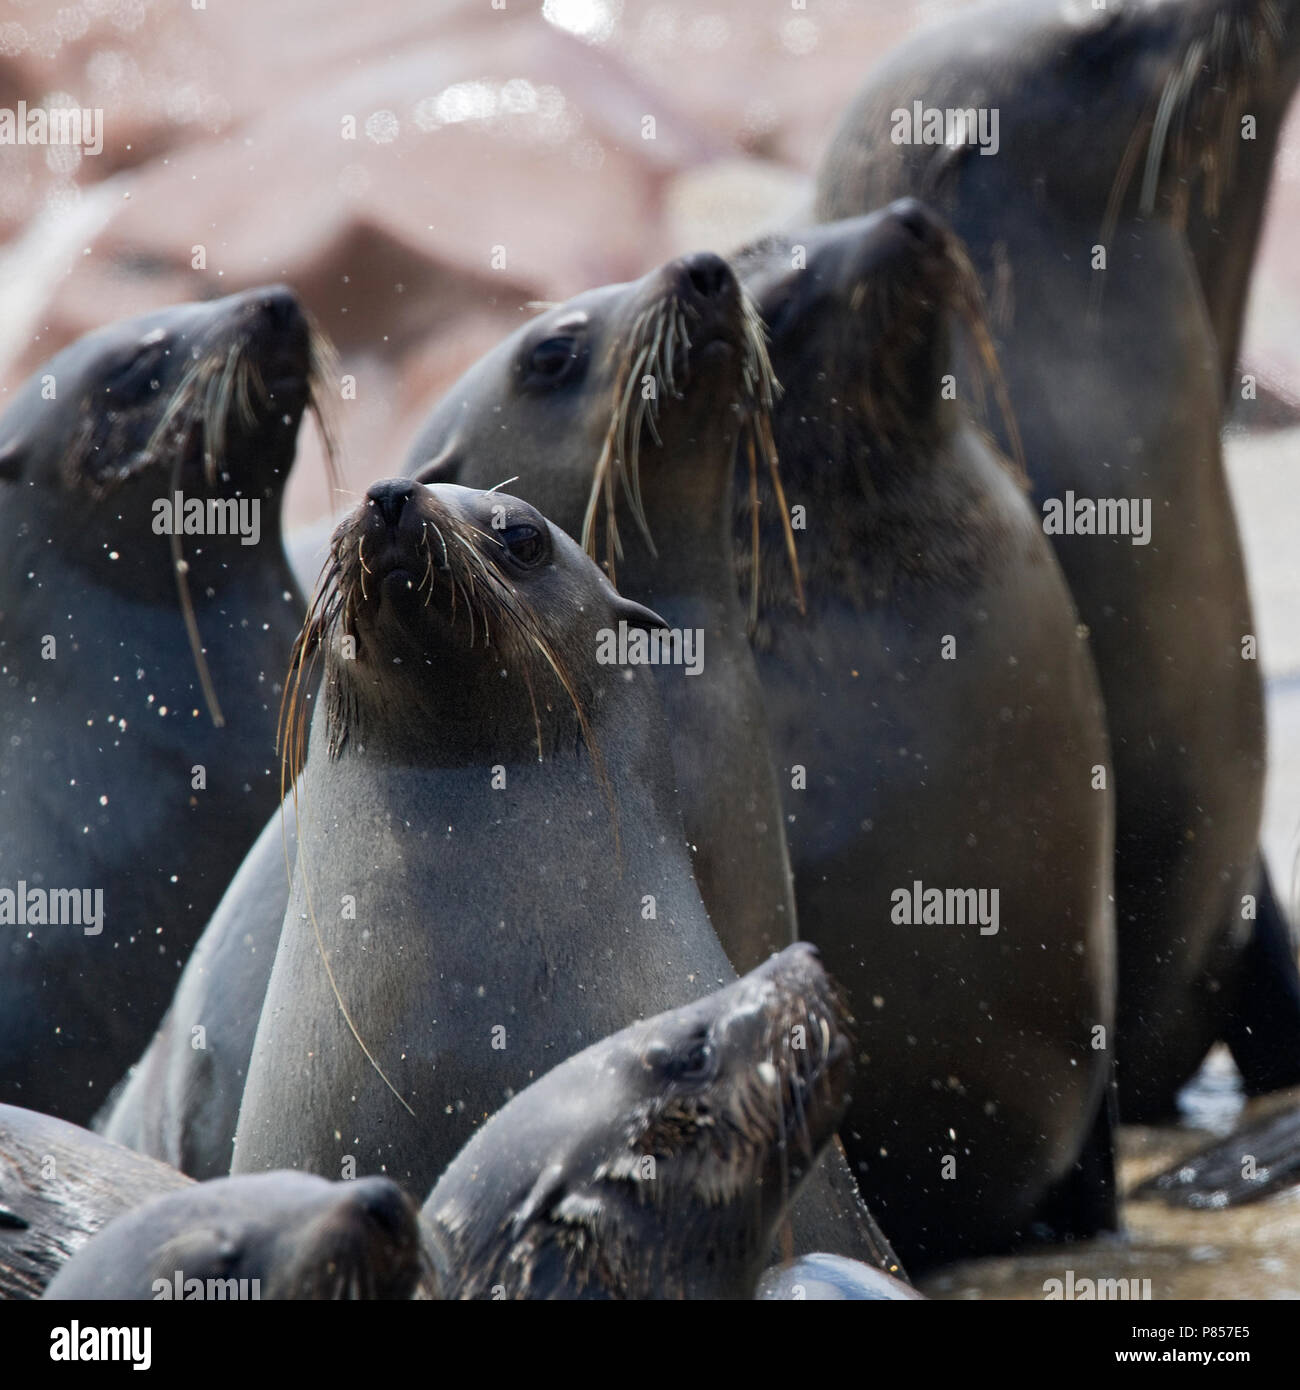 Kaapse pelsrobben kolonie van Cape Cross Namibie, Cape Fur Seal colony at Cape Cross Namibia - Stock Image